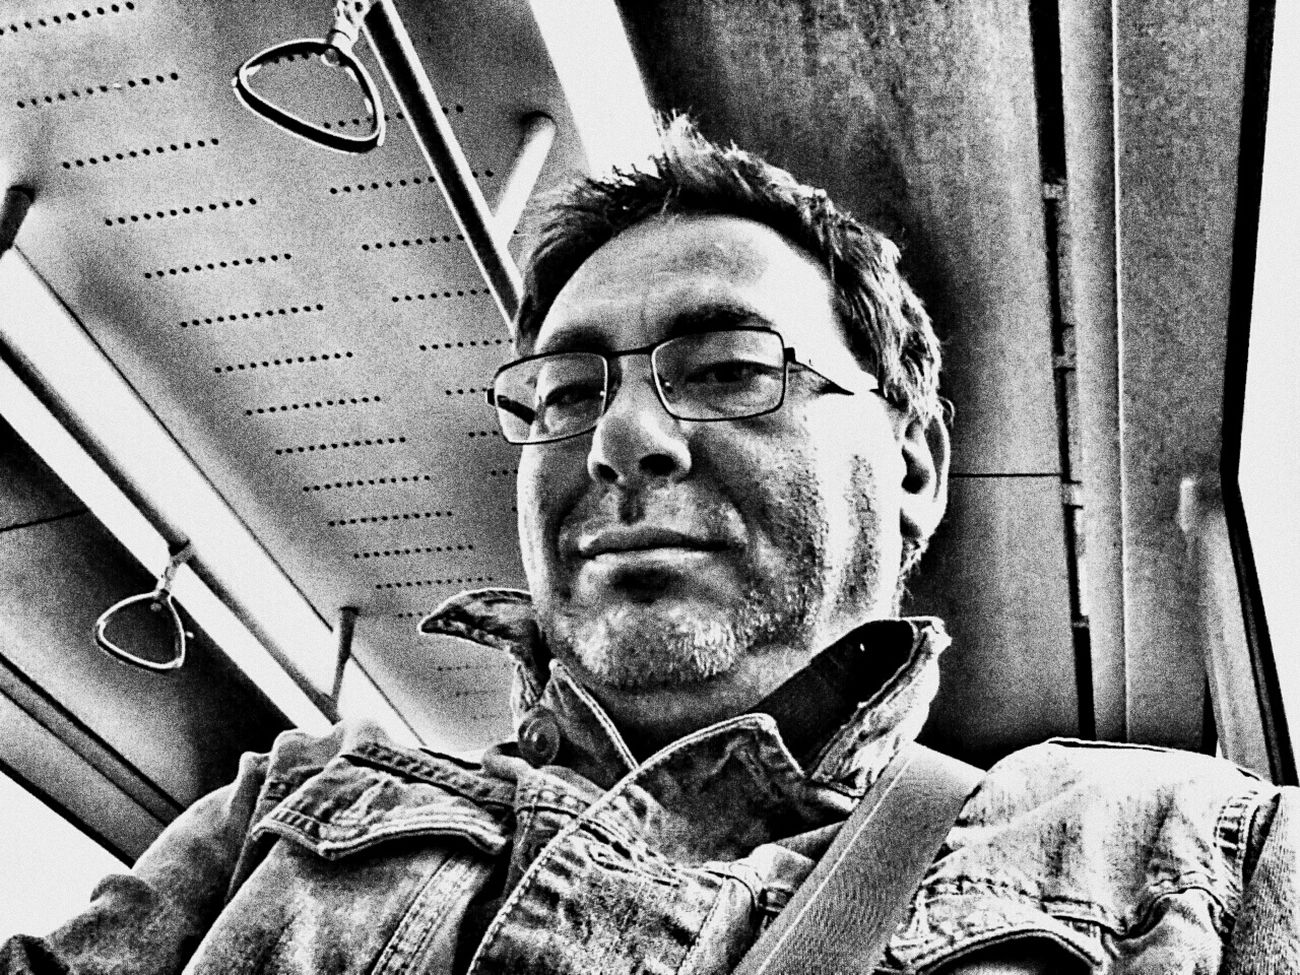 Tuesday_selfportrait_nonchallenge Blackandwhite Public Transportation